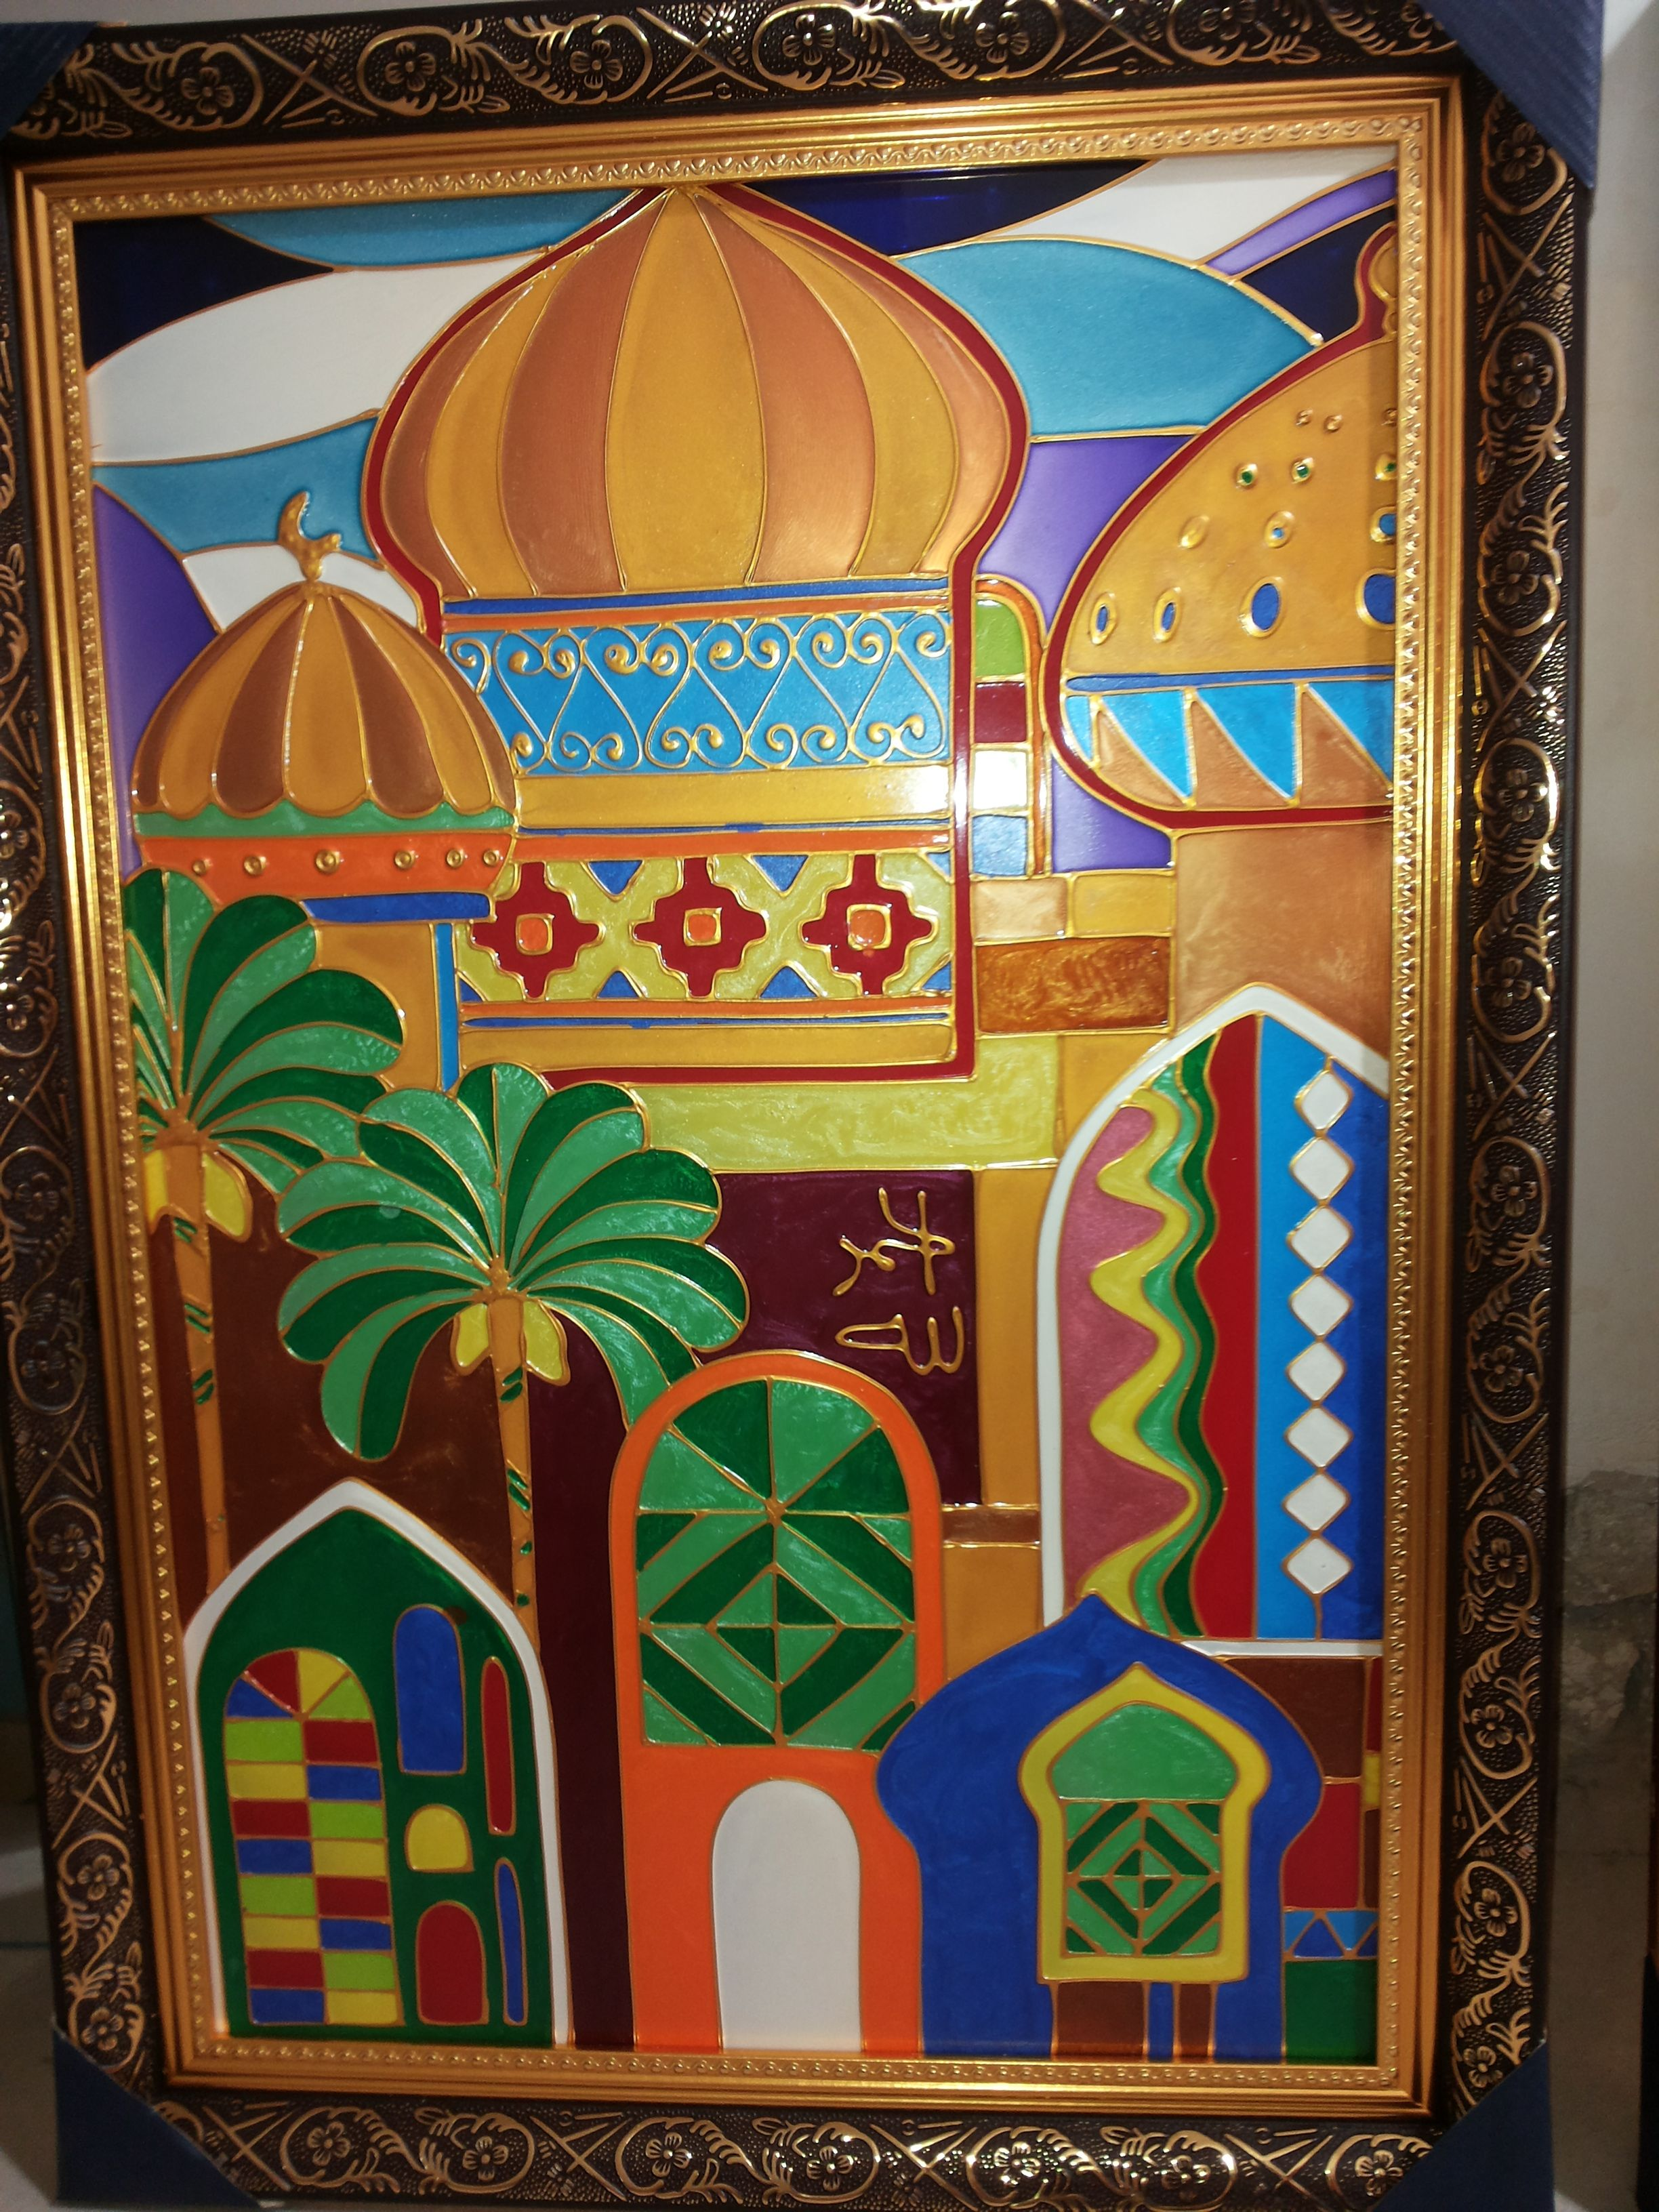 Pin By انور السعدي On Glass Art Coloring Book Art Islamic Art Pattern Islamic Art Calligraphy